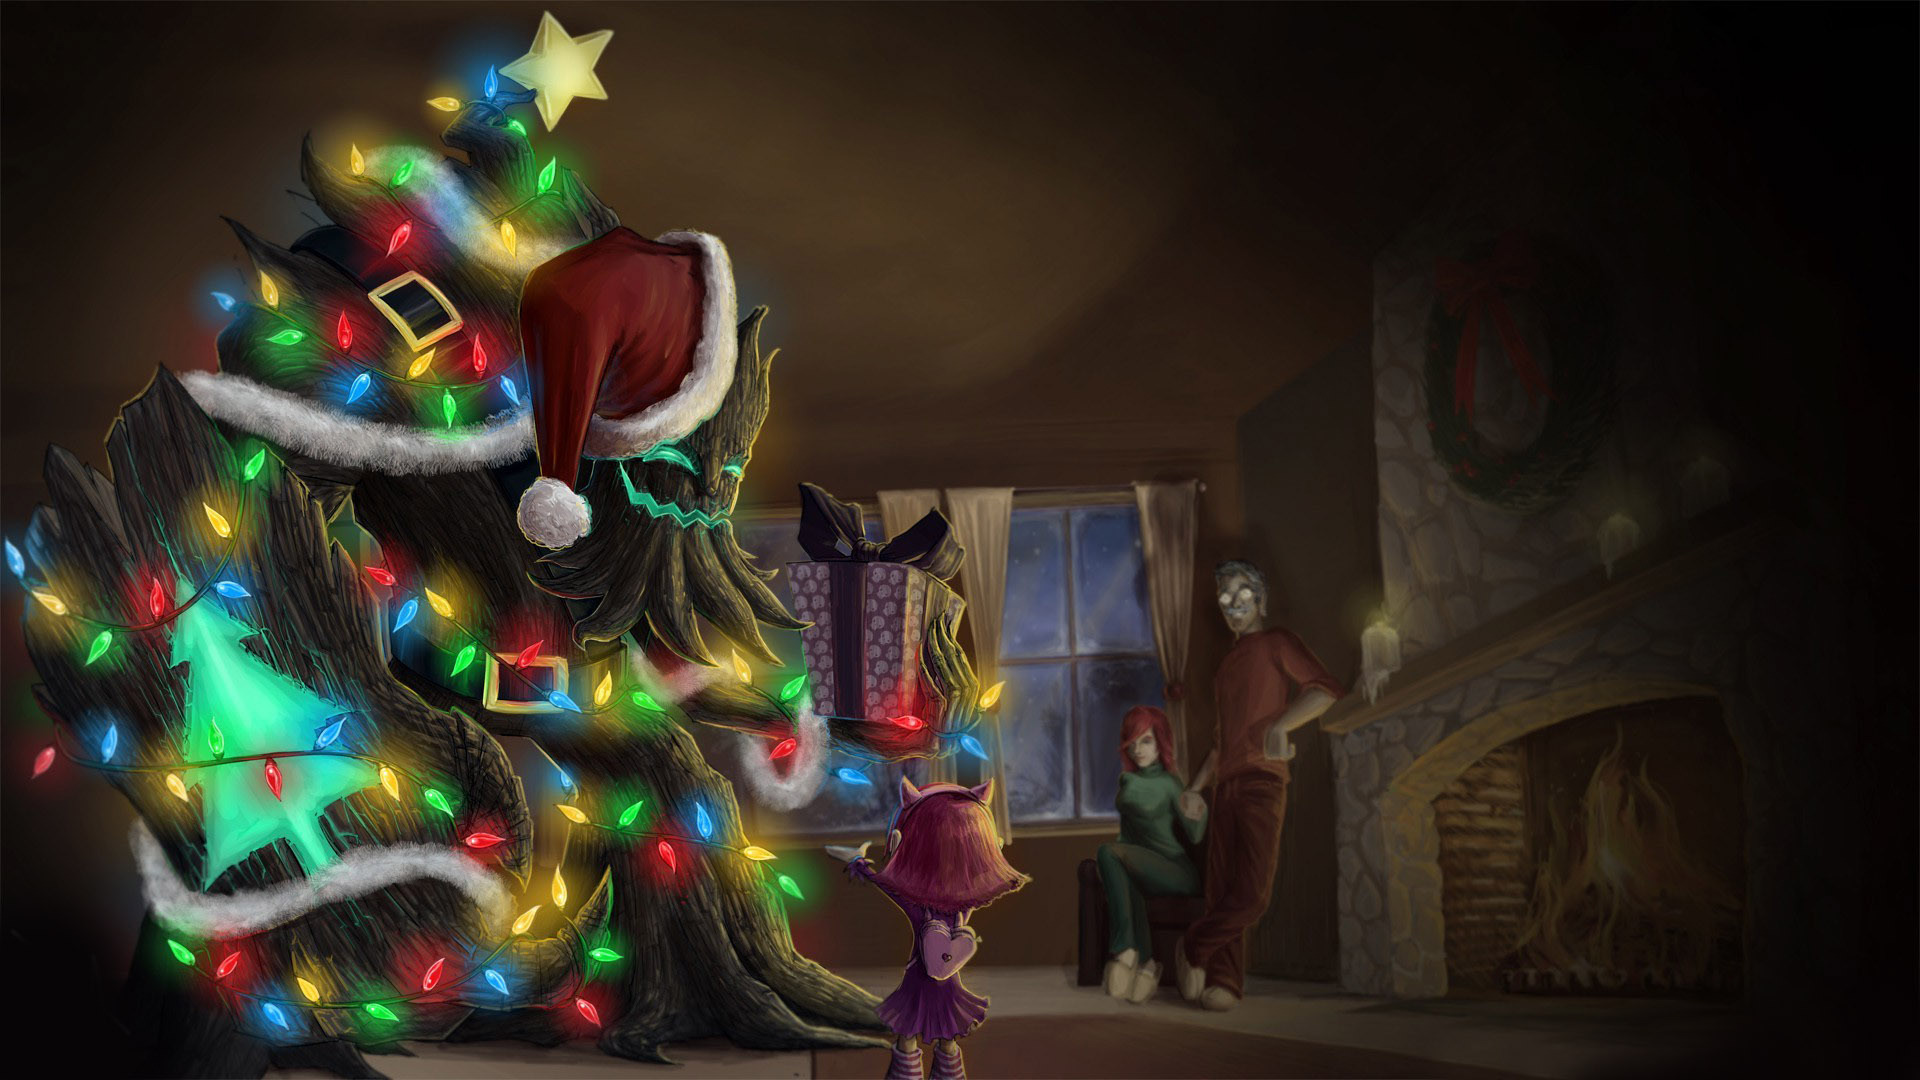 Festive Maokai Old Skin Lolwallpapers